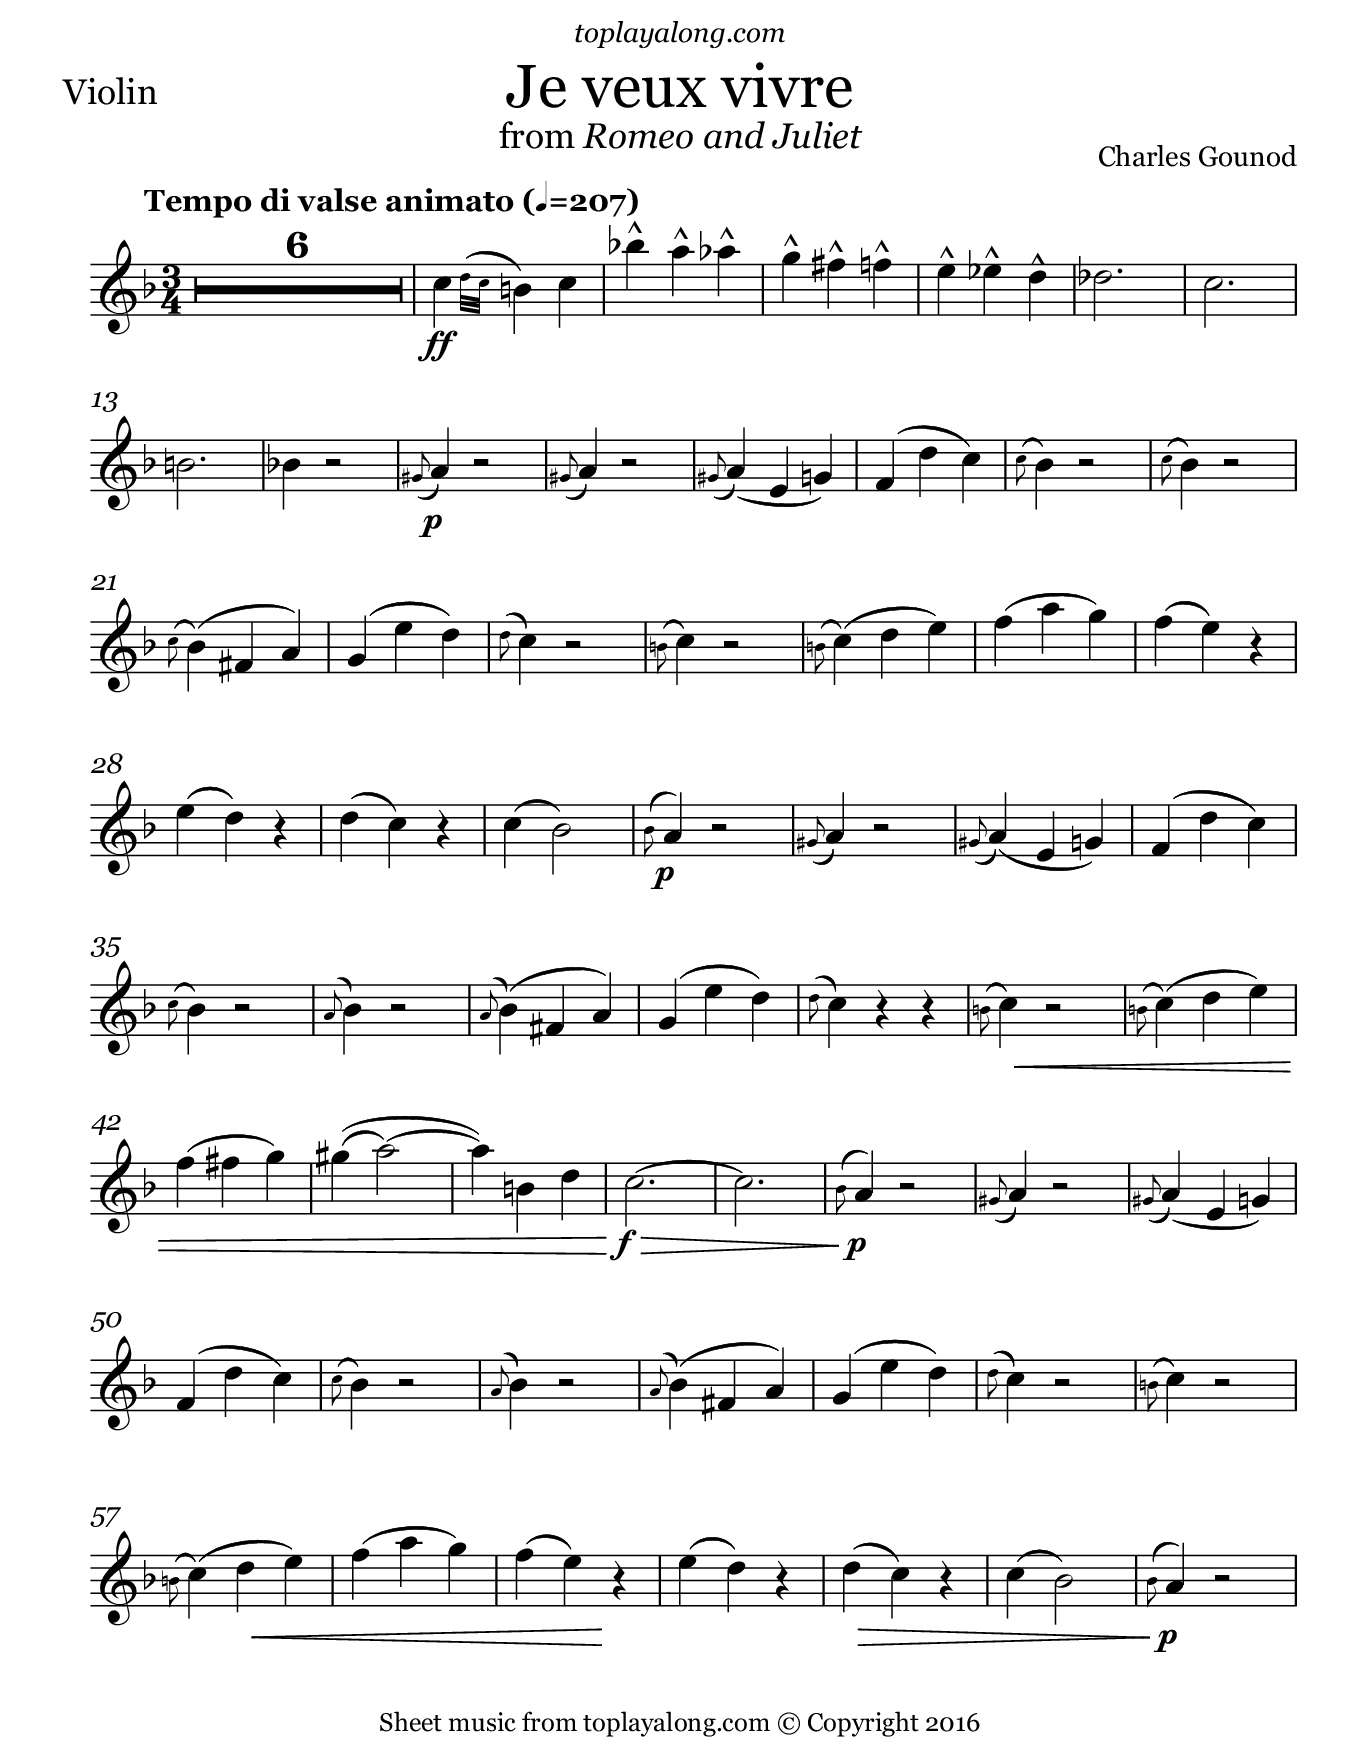 Je veux vivre from Romeo and Juliet by Gounod. Sheet music for Violin, page 1.